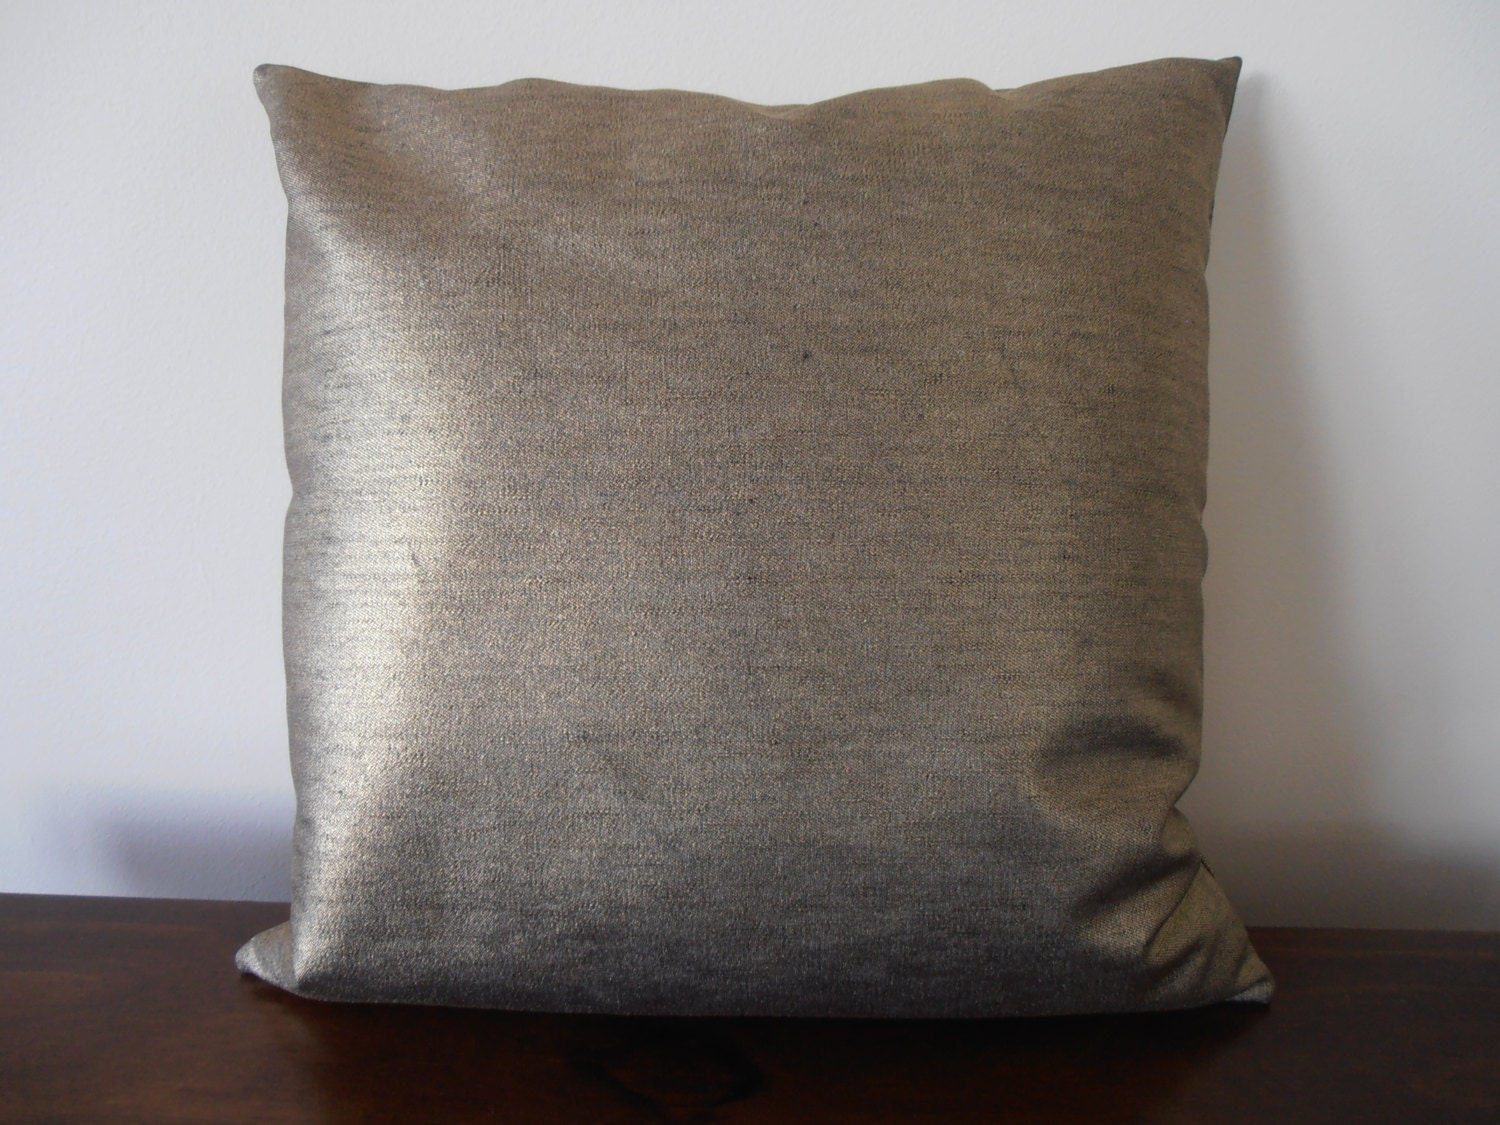 You searched for: metallic pillow! Etsy is the home to thousands of handmade, vintage, and one-of-a-kind products and gifts related to your search. No matter what you're looking for or where you are in the world, our global marketplace of sellers can help you find unique and affordable options. Let's get started!